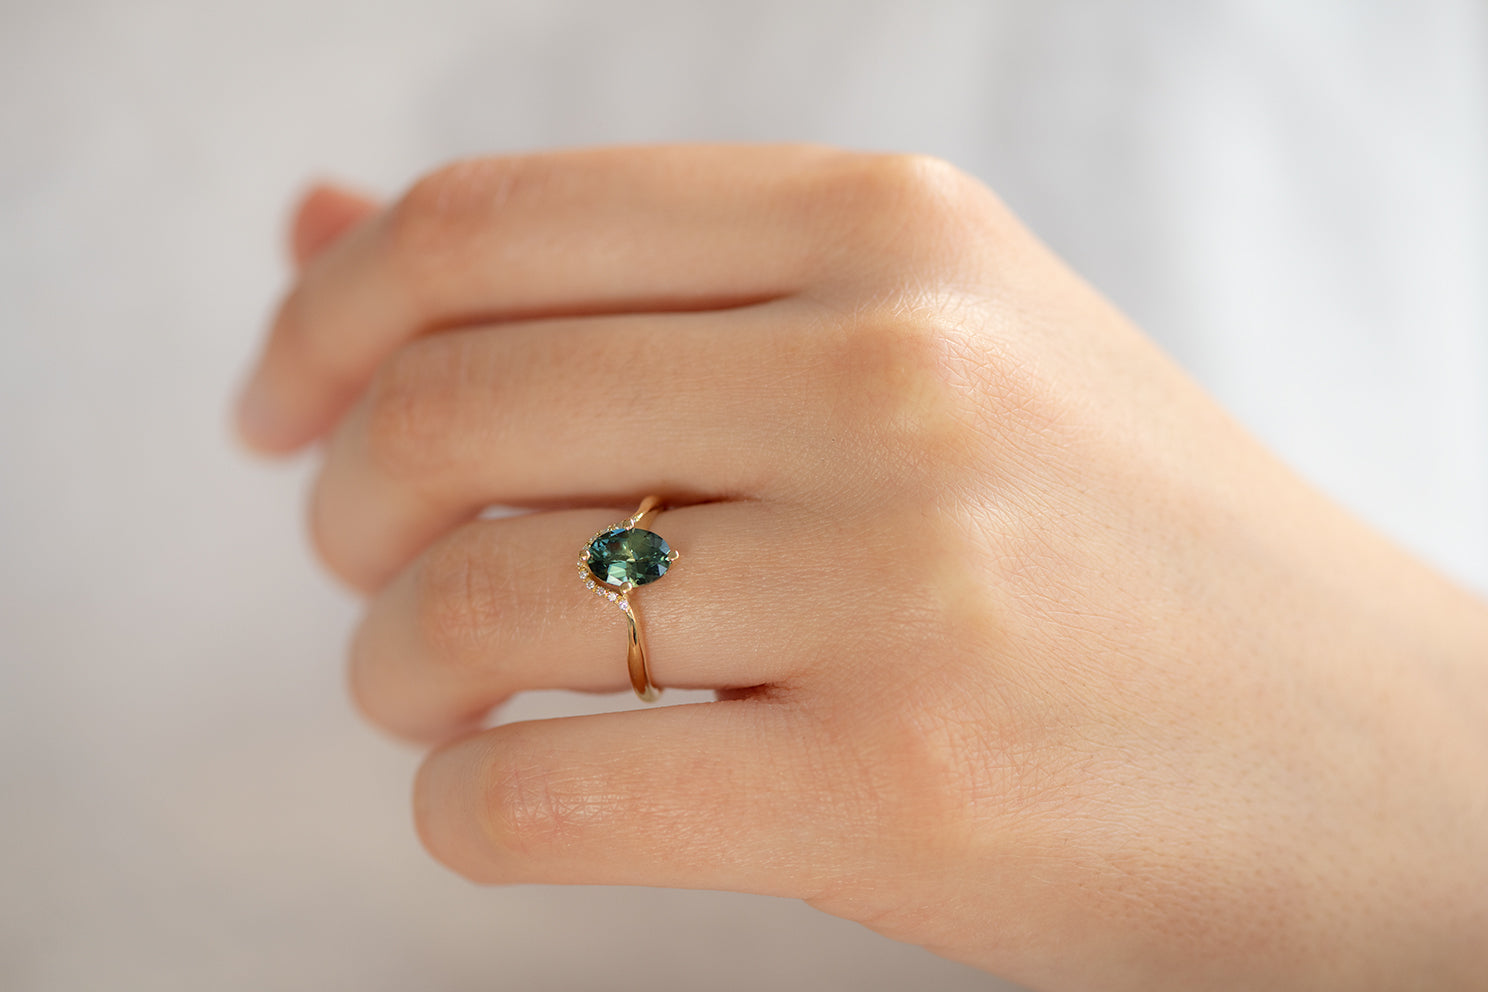 Teal Sapphire Engagement Ring - OOAK on Hand Other Angle From Side